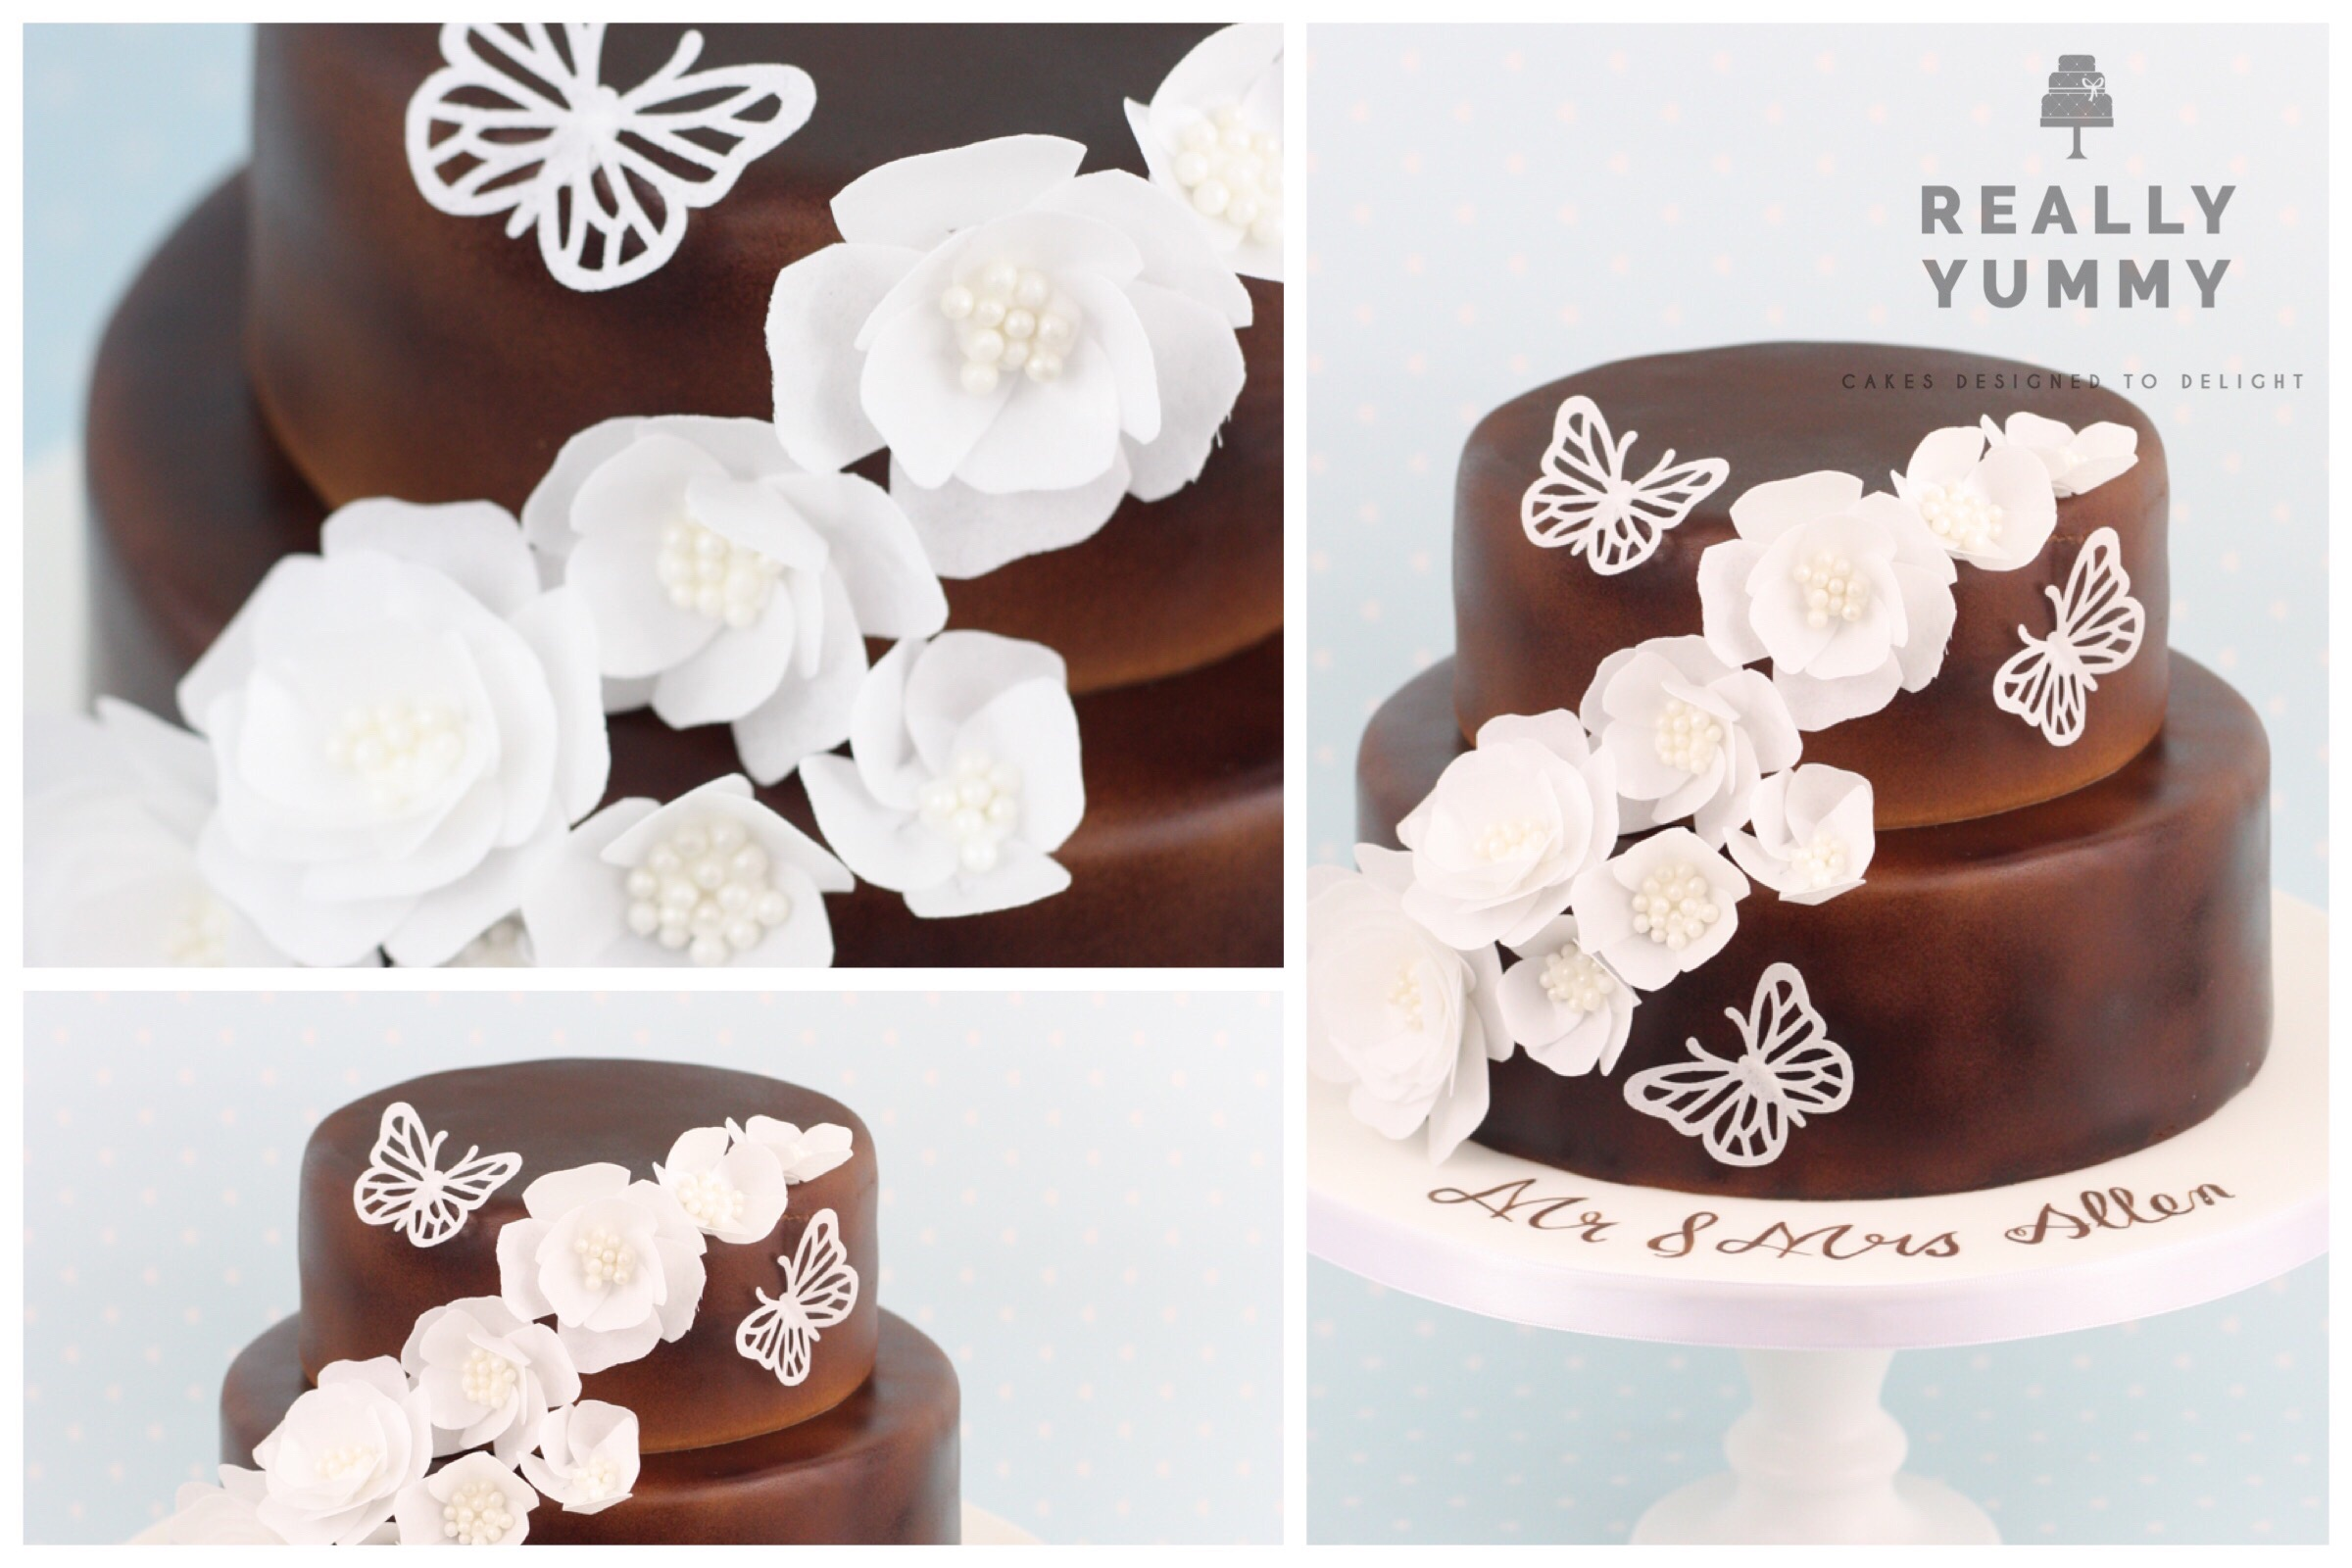 Wedding cake, in brown and white